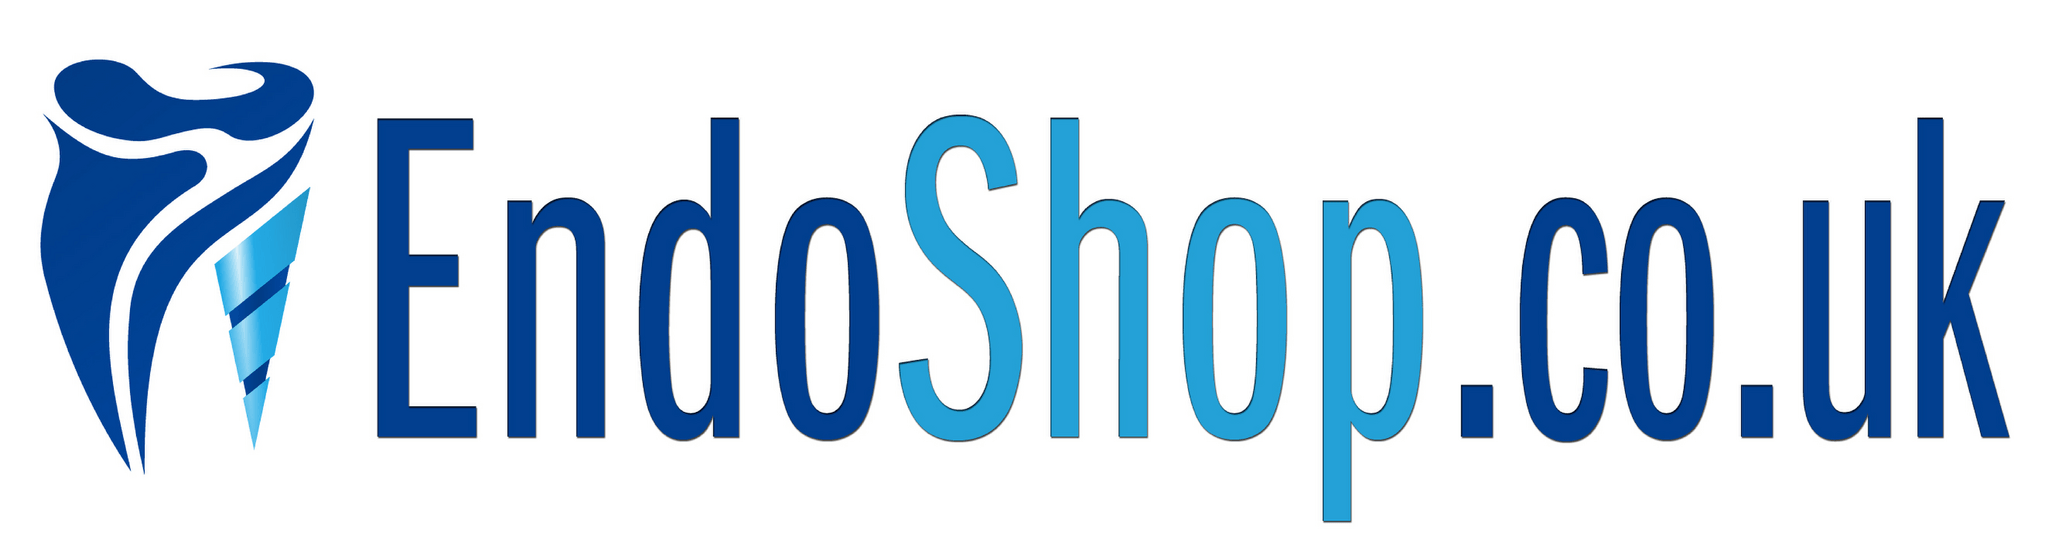 EndoShop